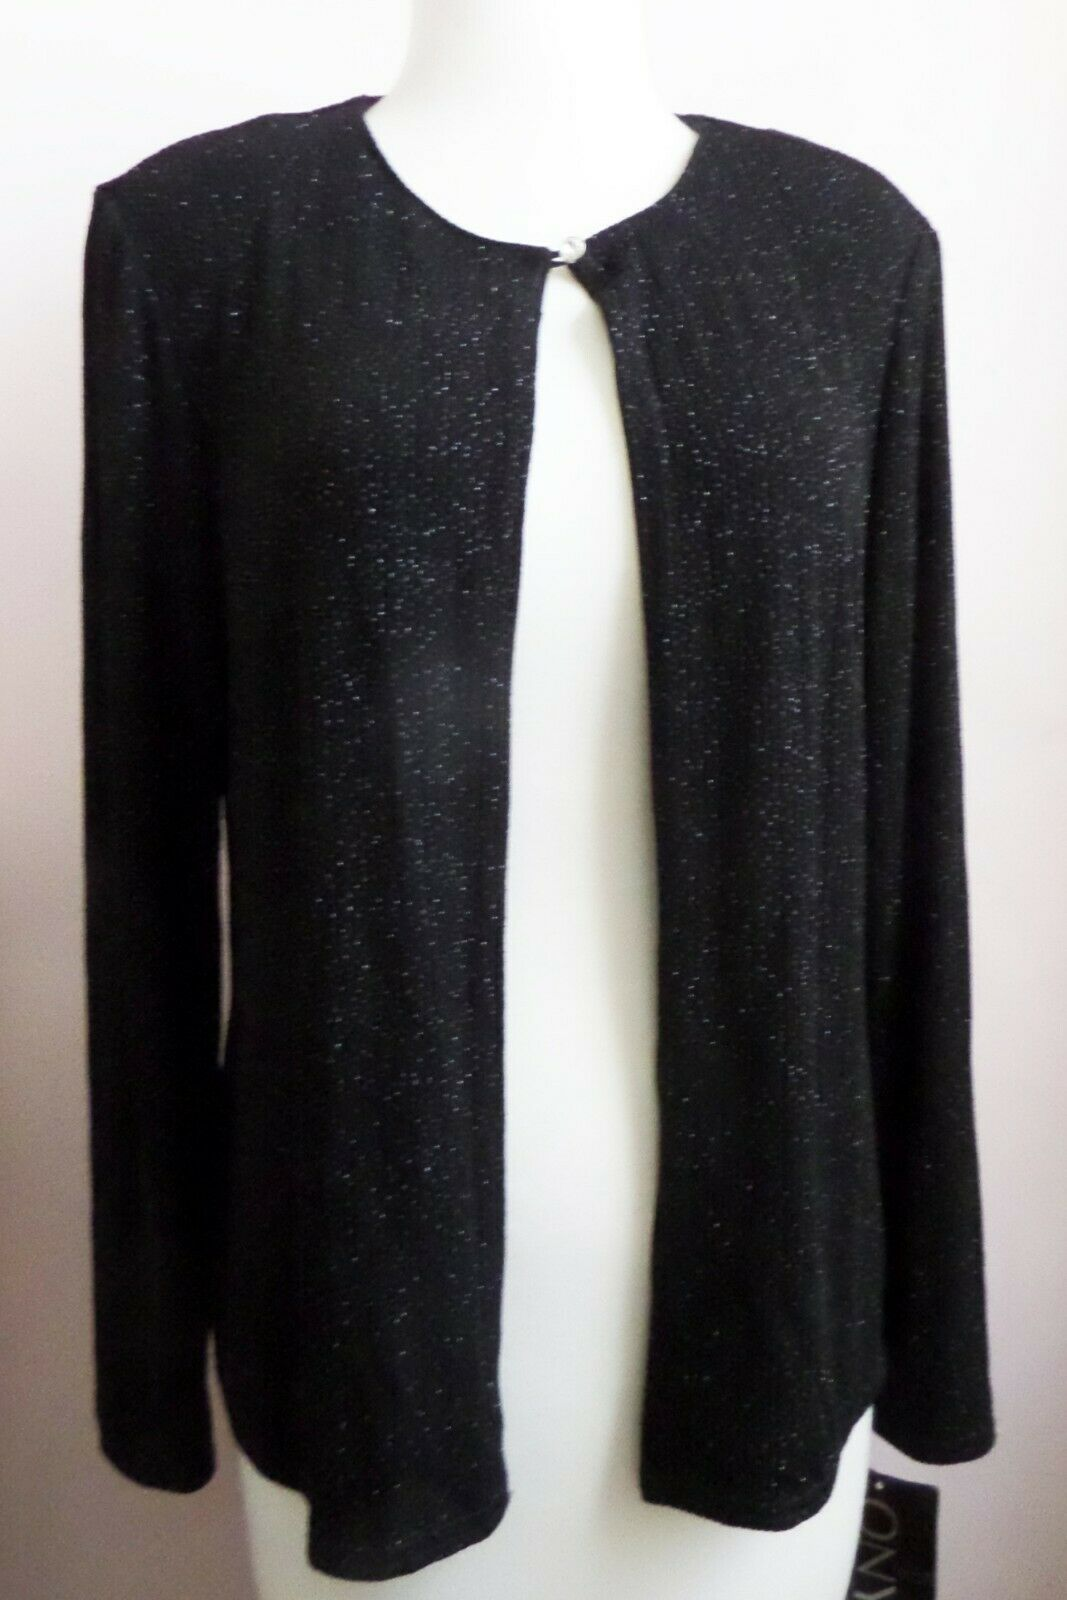 ONYX Nite Stretchy Black Single Button Front Cardigan with Silver Shimmer Size M